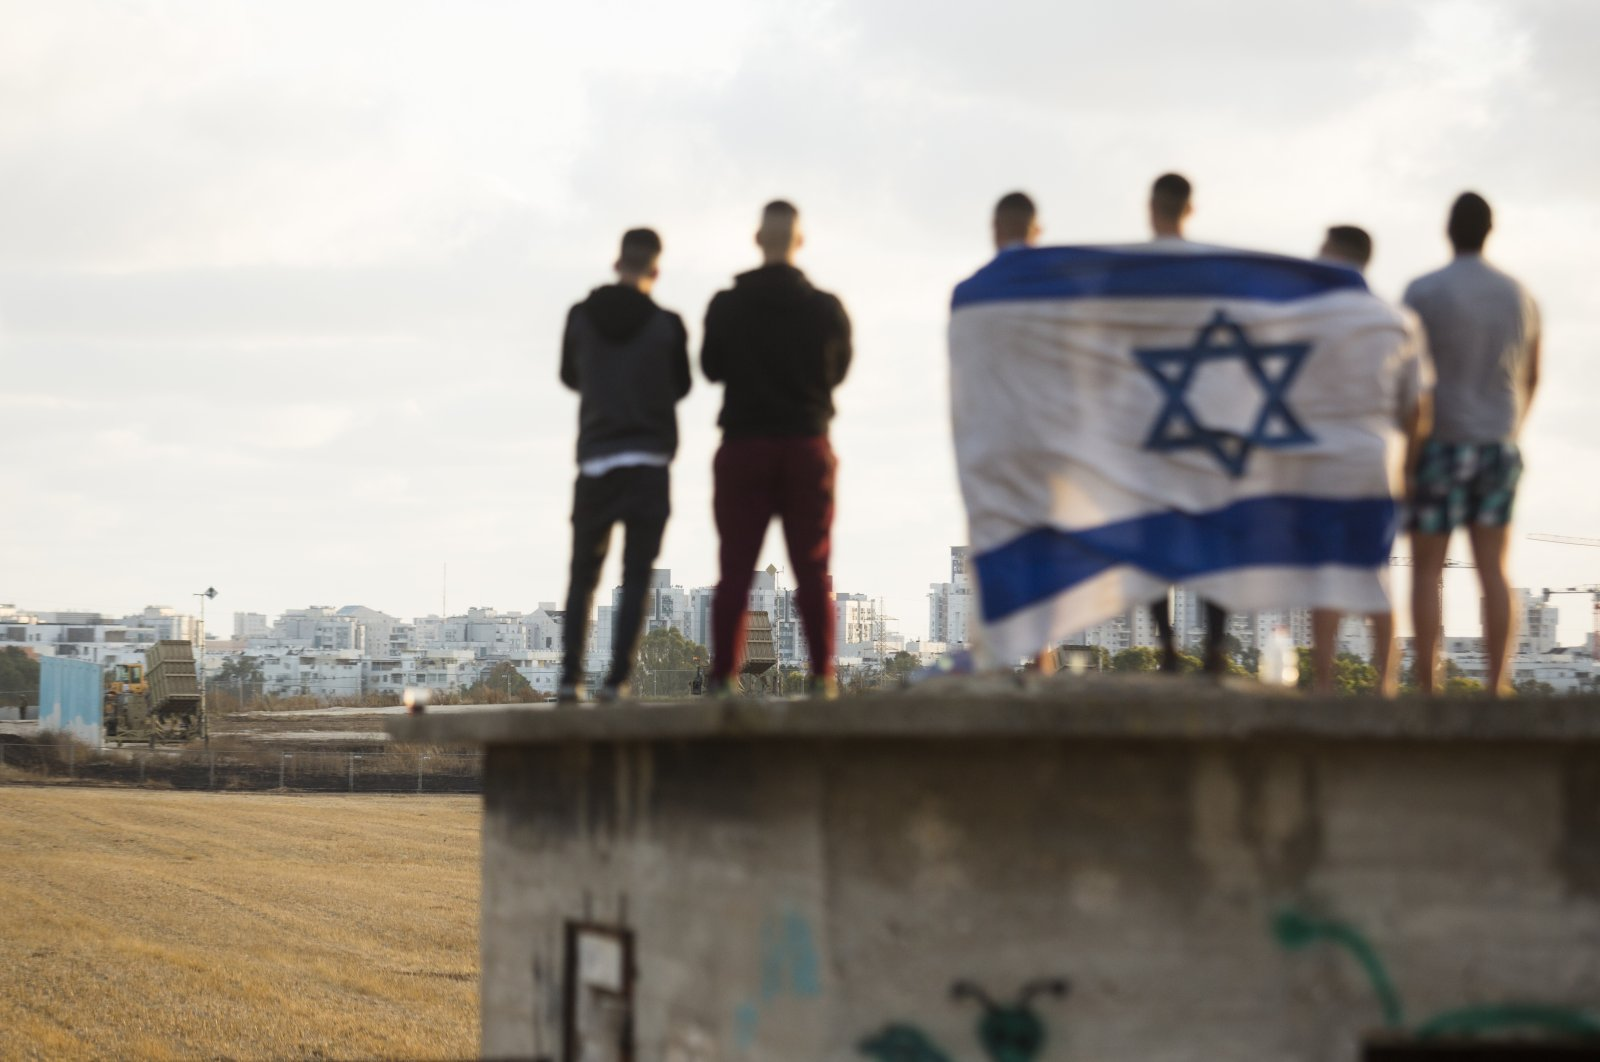 Israelis gather to watch the Iron Dome missile defense system intercept rocket fire amid Israeli attacks against Gaza, in Ashdod, Israel, May 17, 2021. (Photo by Getty Images)